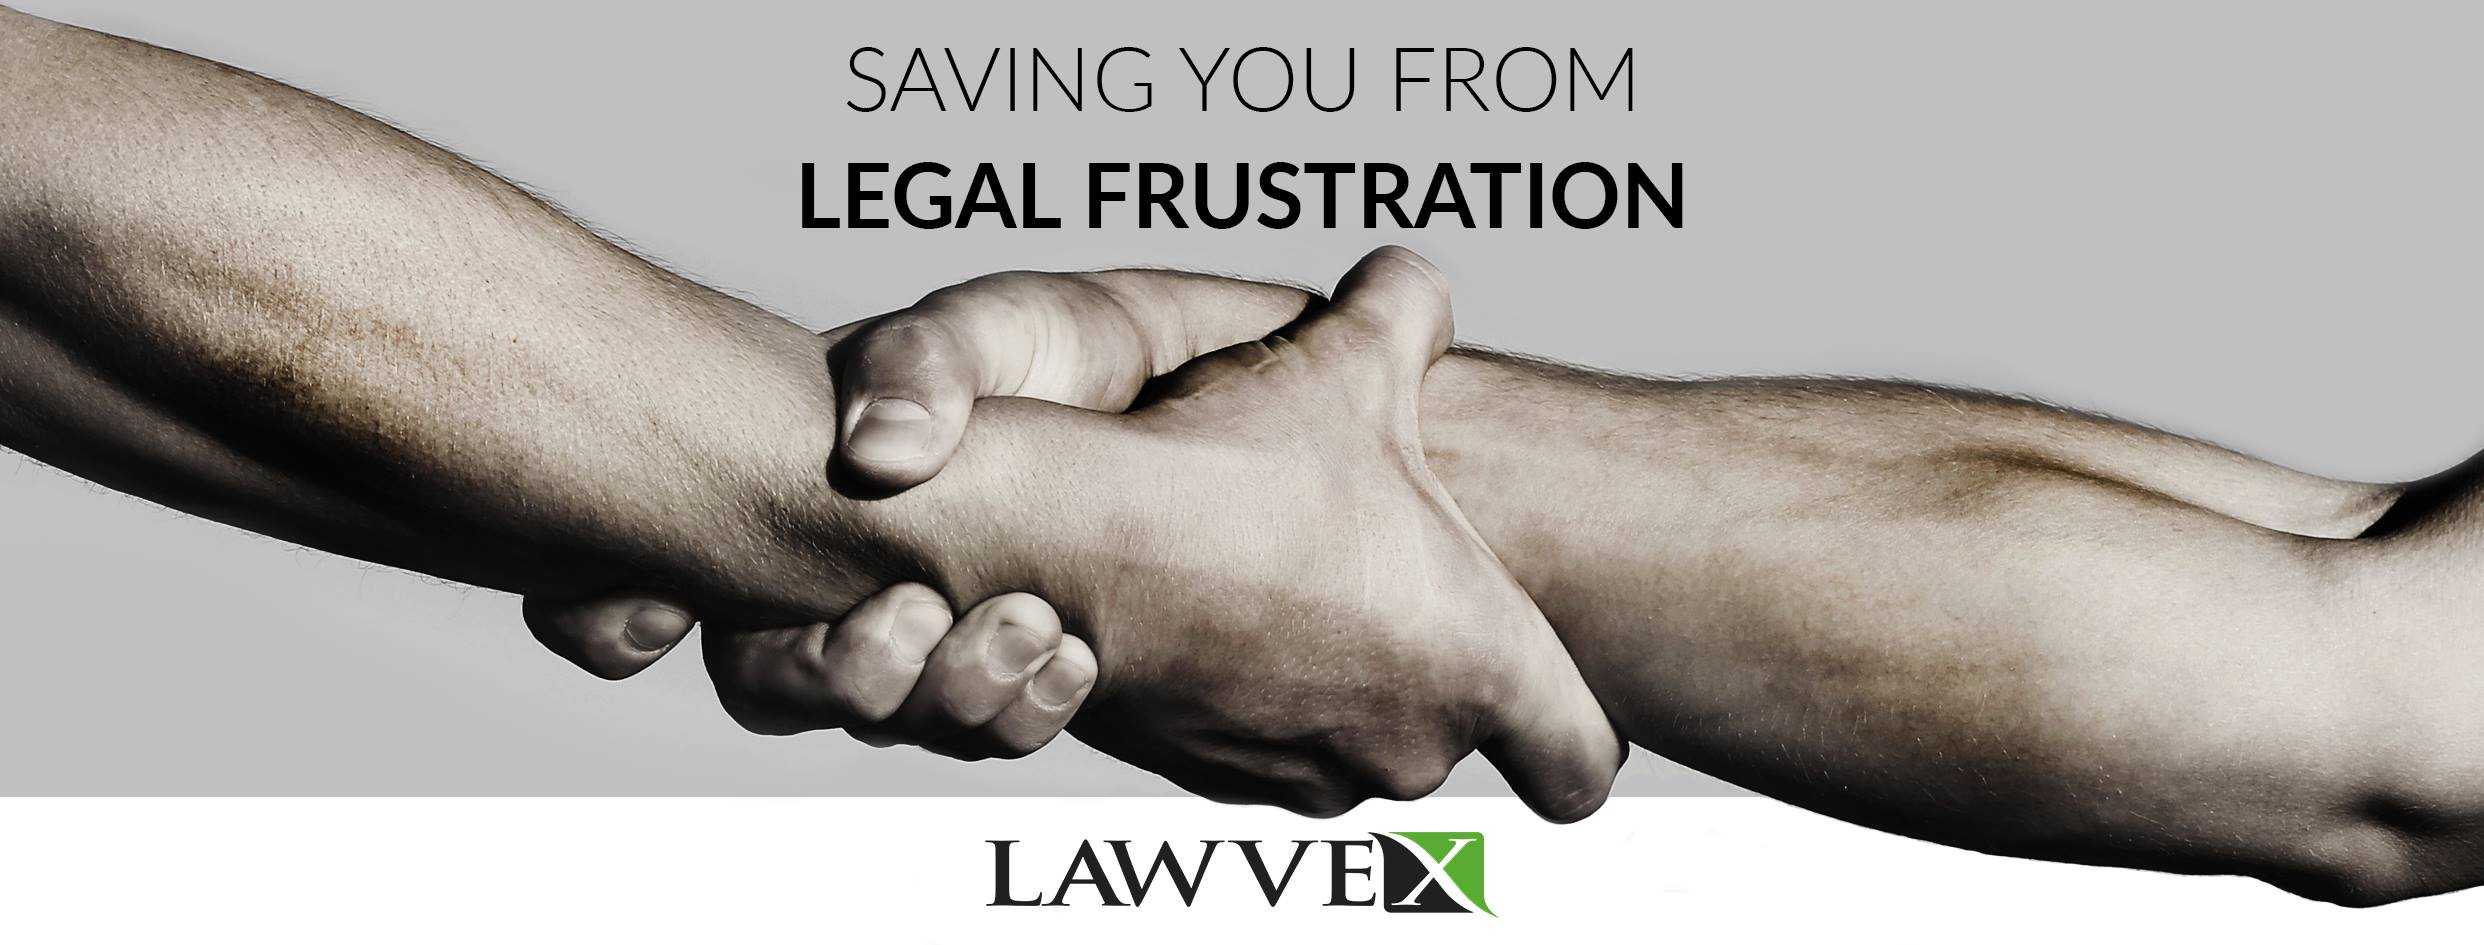 Lawvex, LLP reviews | Business Law at 2565 Alluvial Ave - Clovis CA